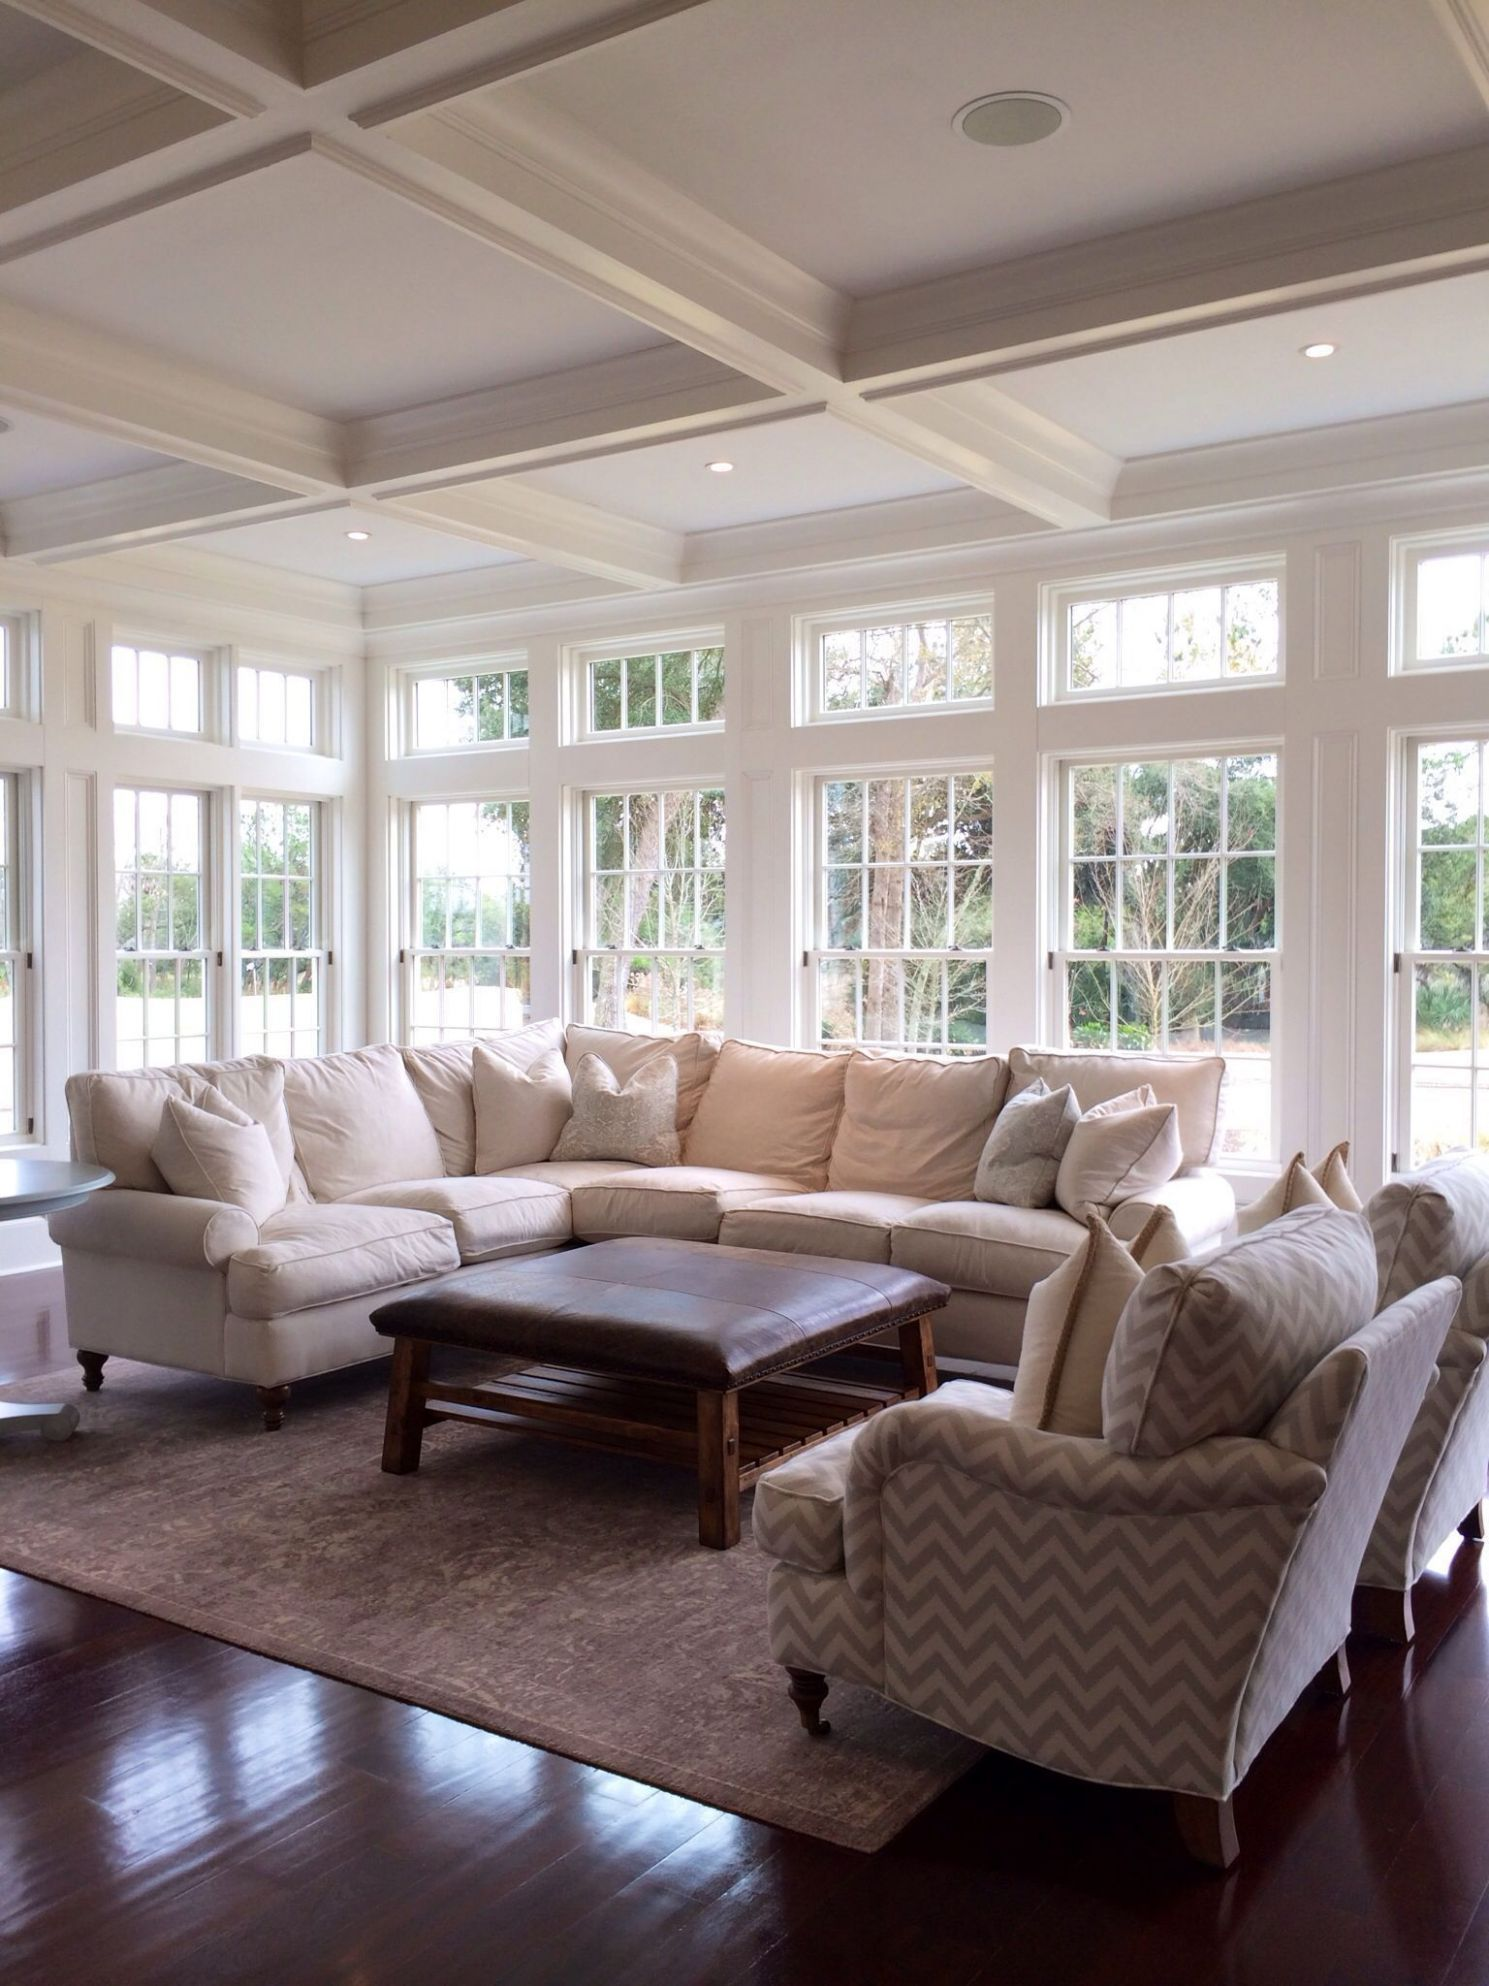 Sunroom Lighting Ideas Ceiling Lighting If You Have House With ...